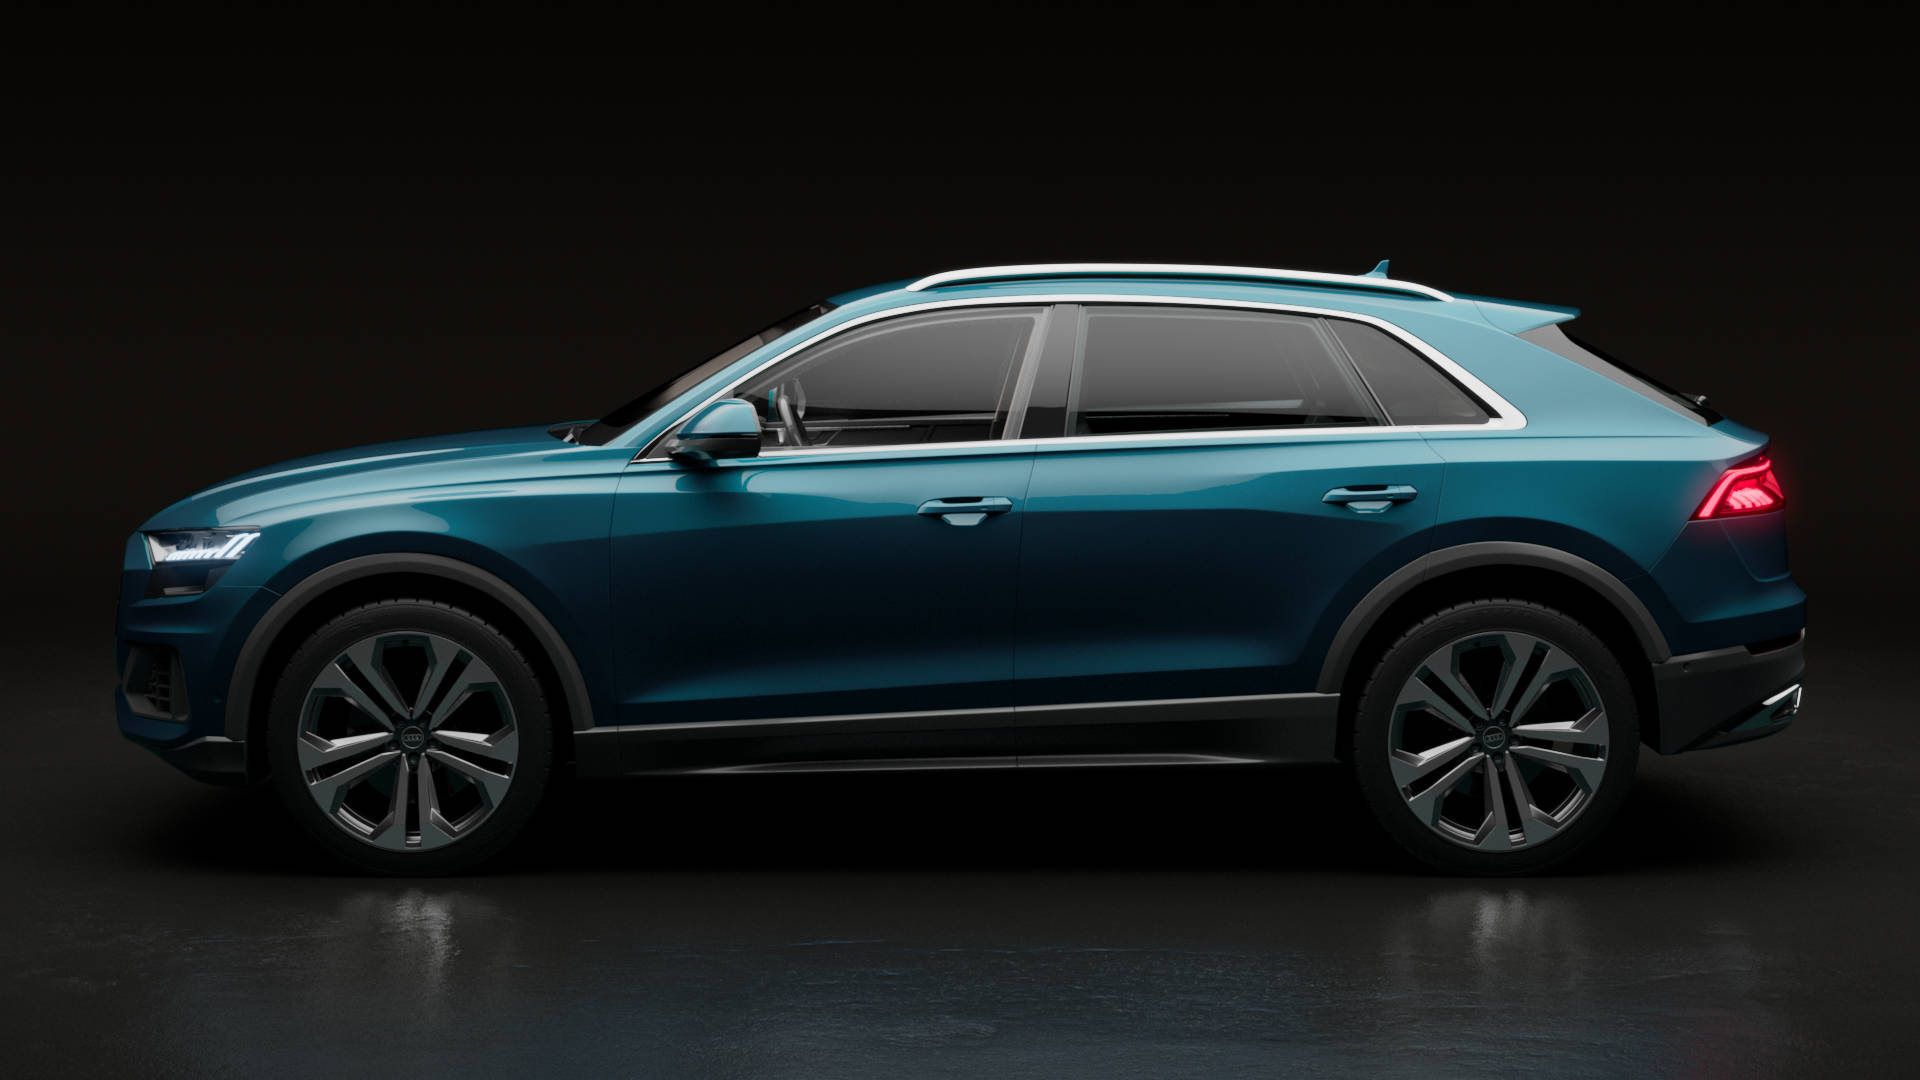 Galaxy blue Audi Q8 product shot side view.